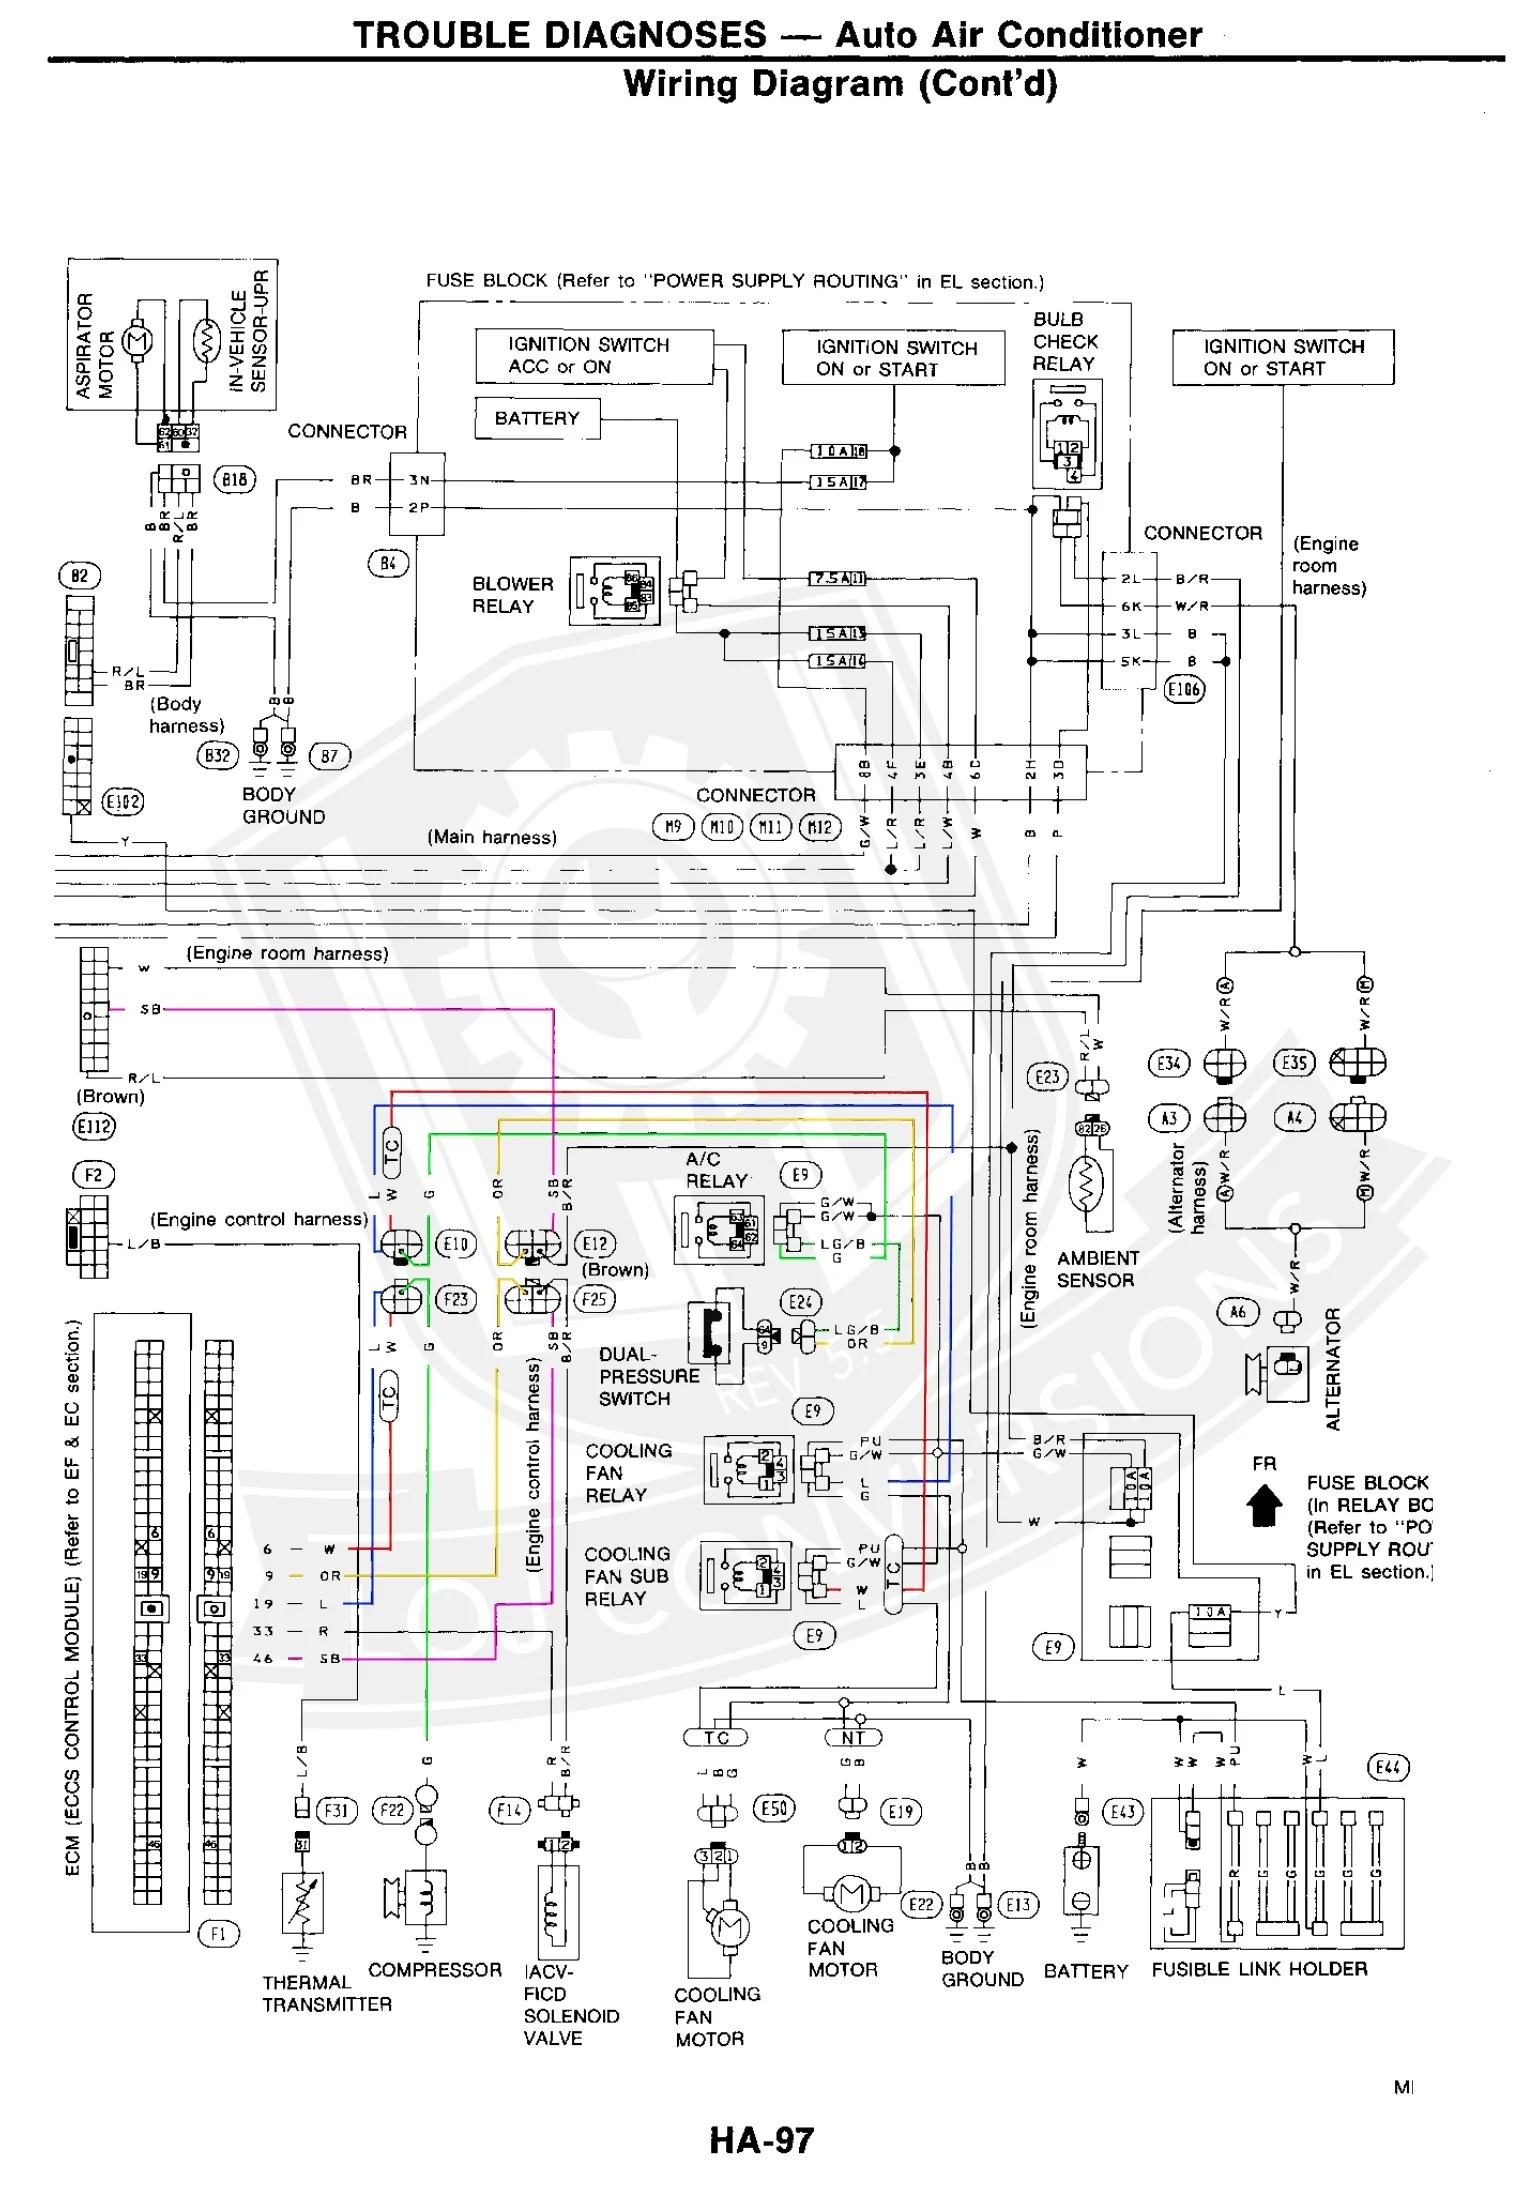 1980 camaro wiring diagram wiring diagram centre 1980 camaro wiring diagram [ 1515 x 2194 Pixel ]